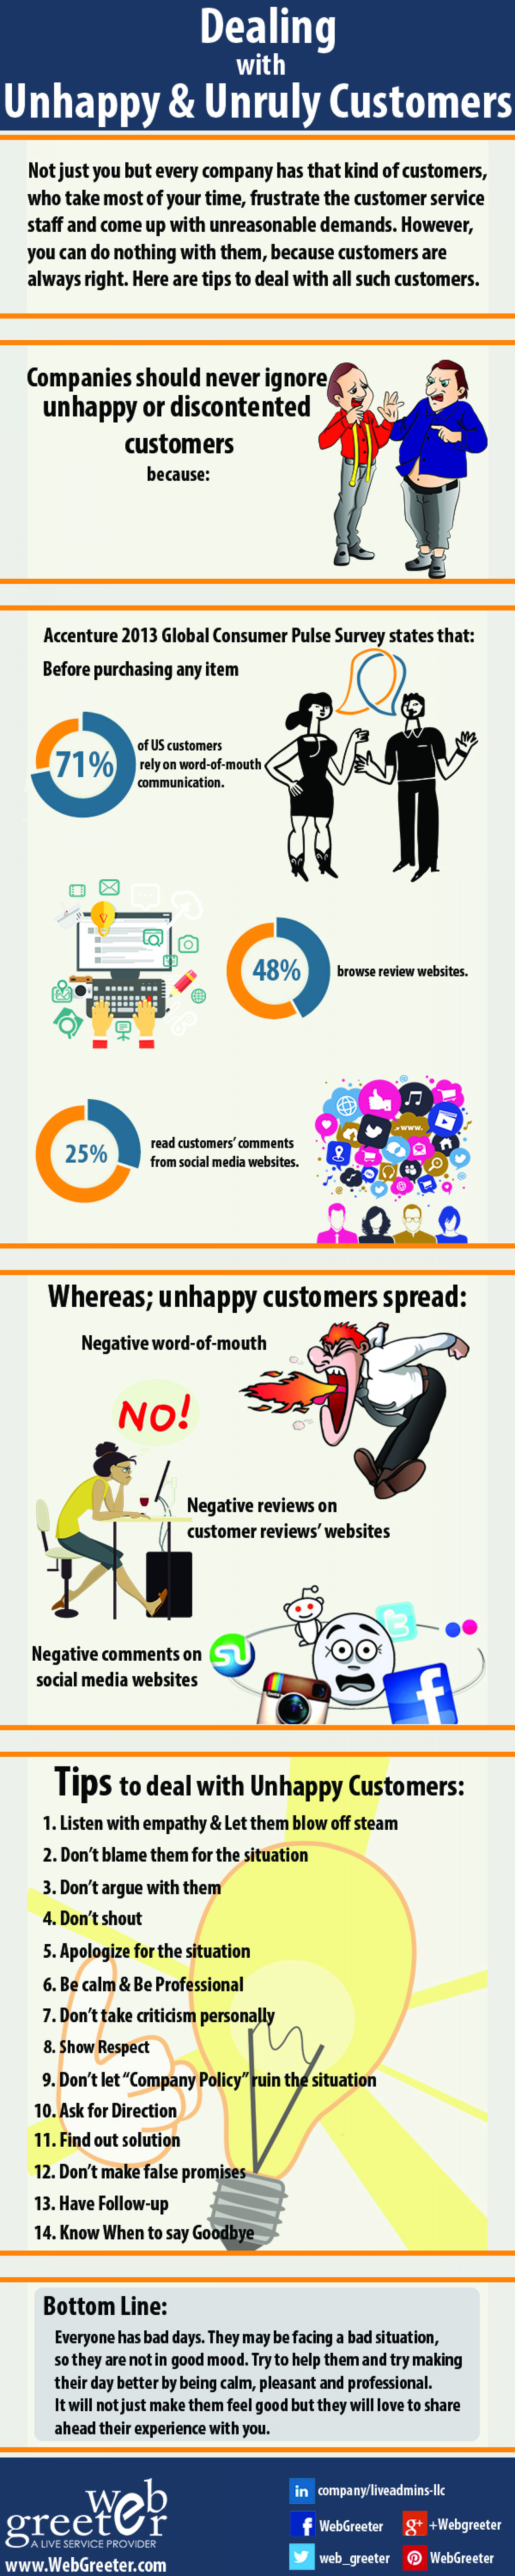 Dealing with Unhappy & Unruly Customers Infographic